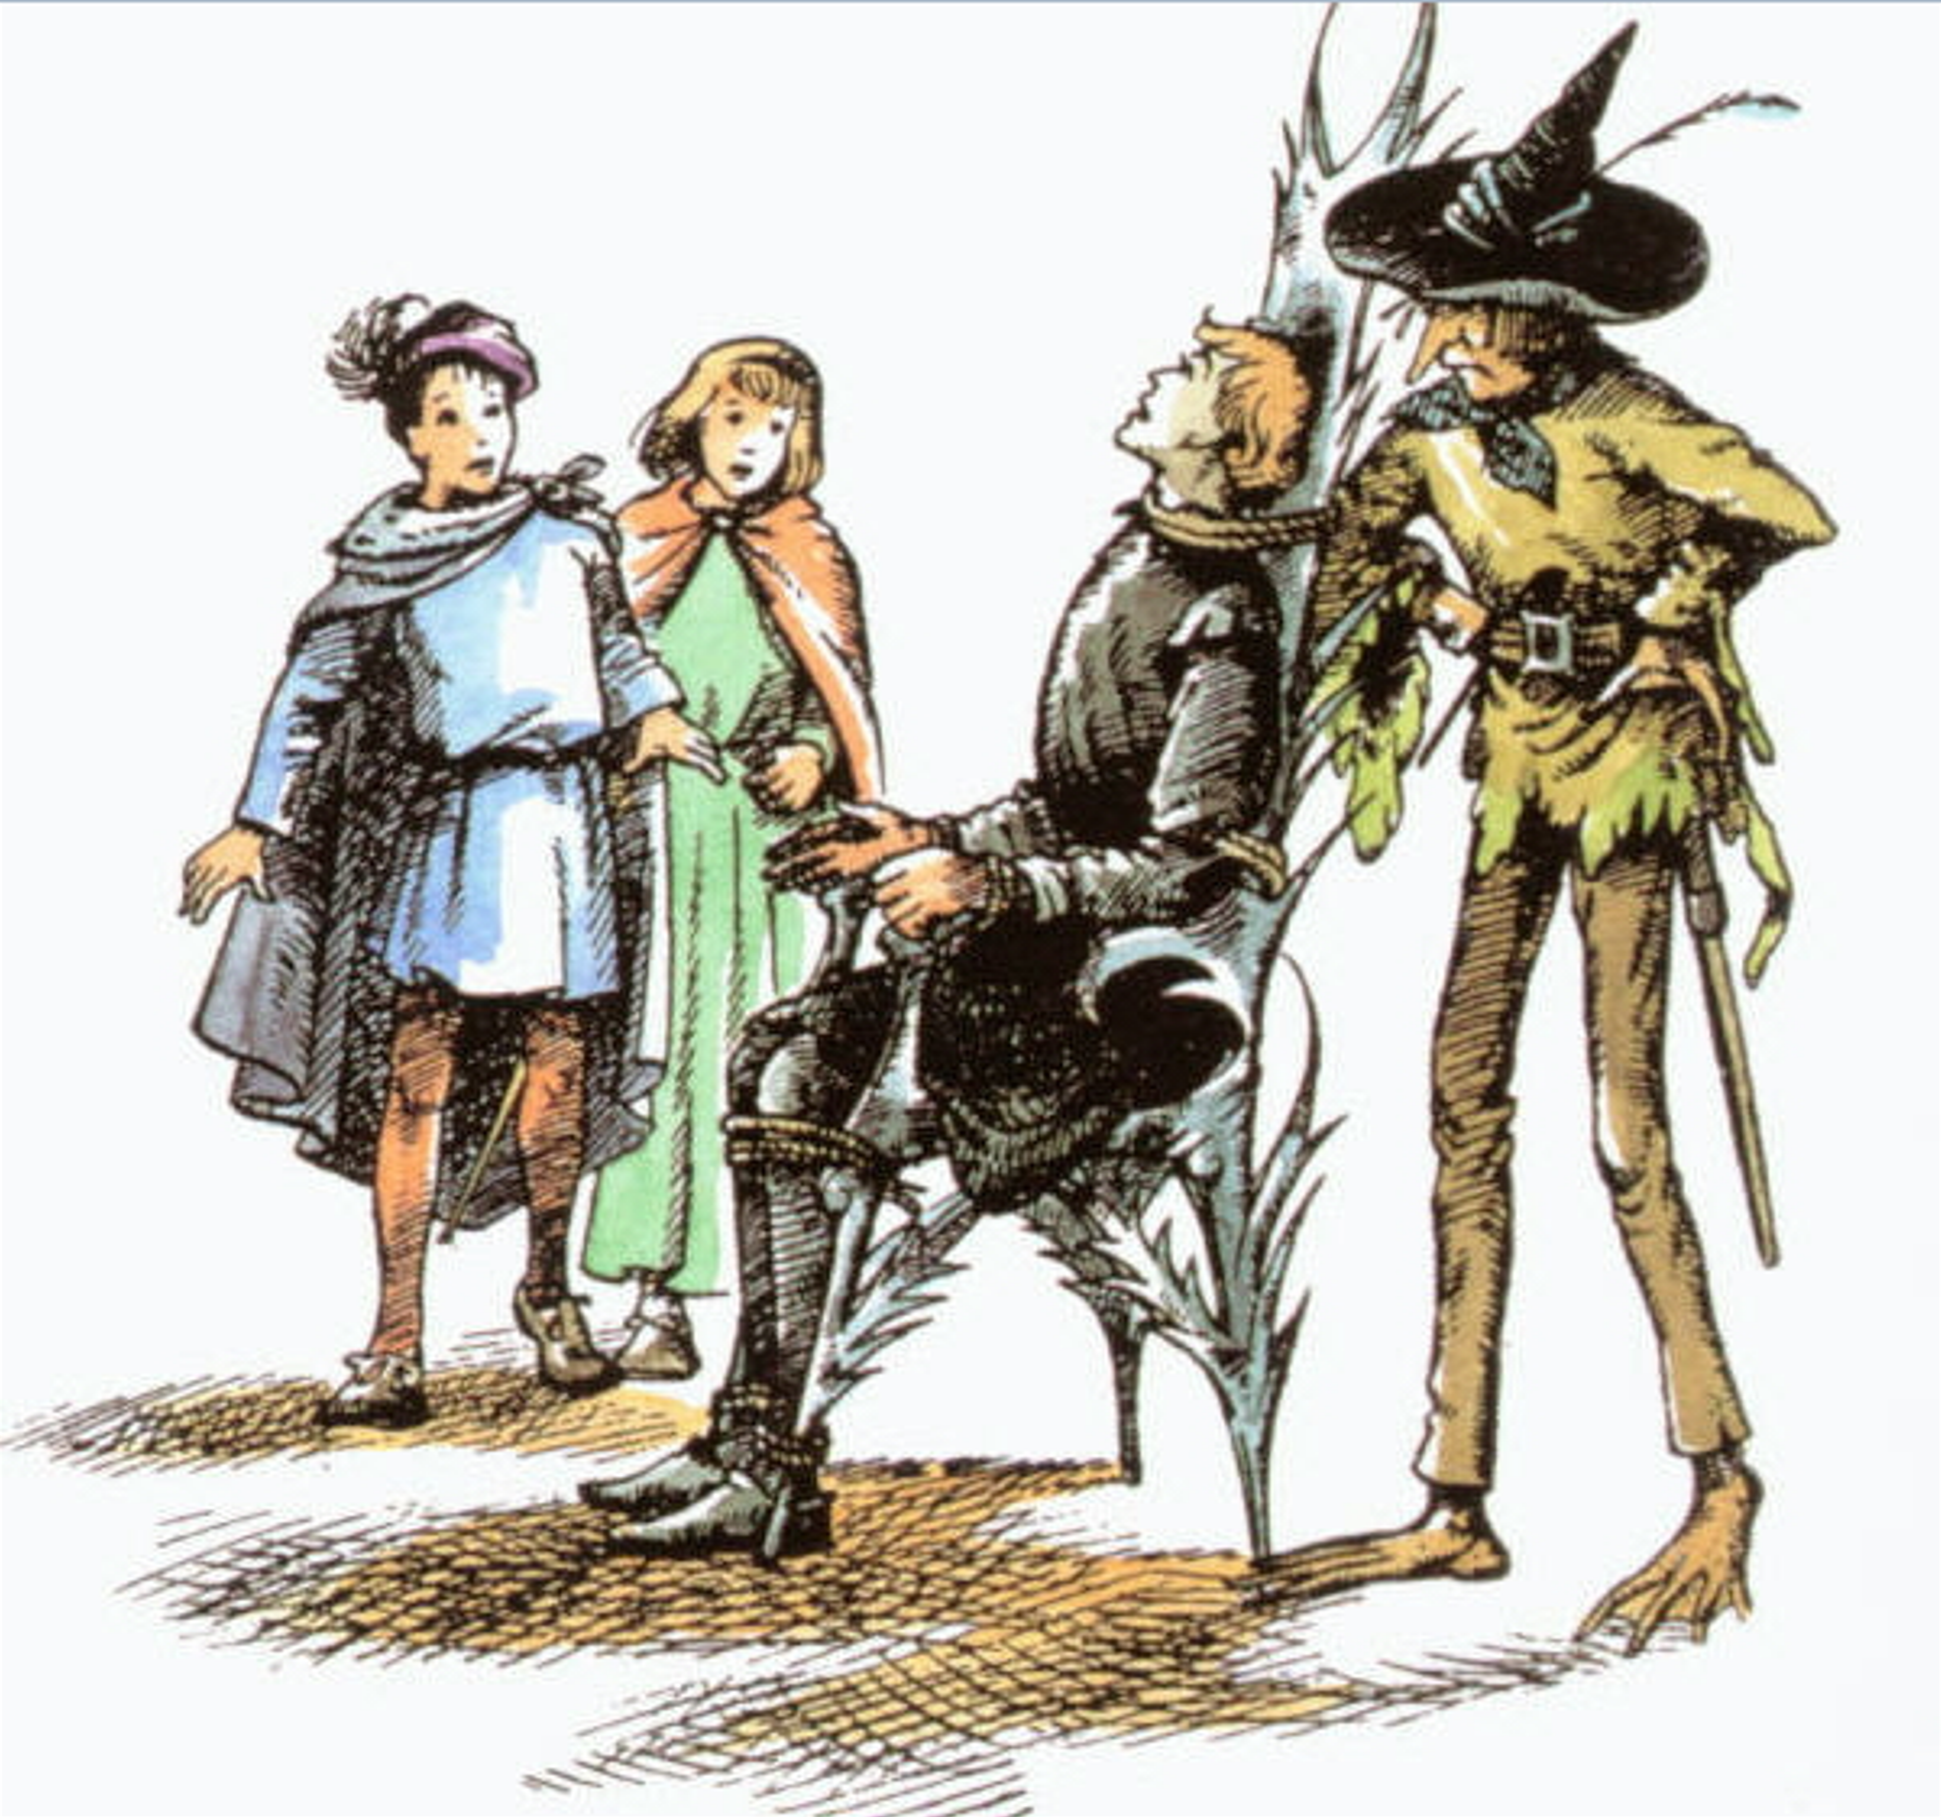 Eustace, Jill, Rillian, and Puddleglum in The Silver Chair